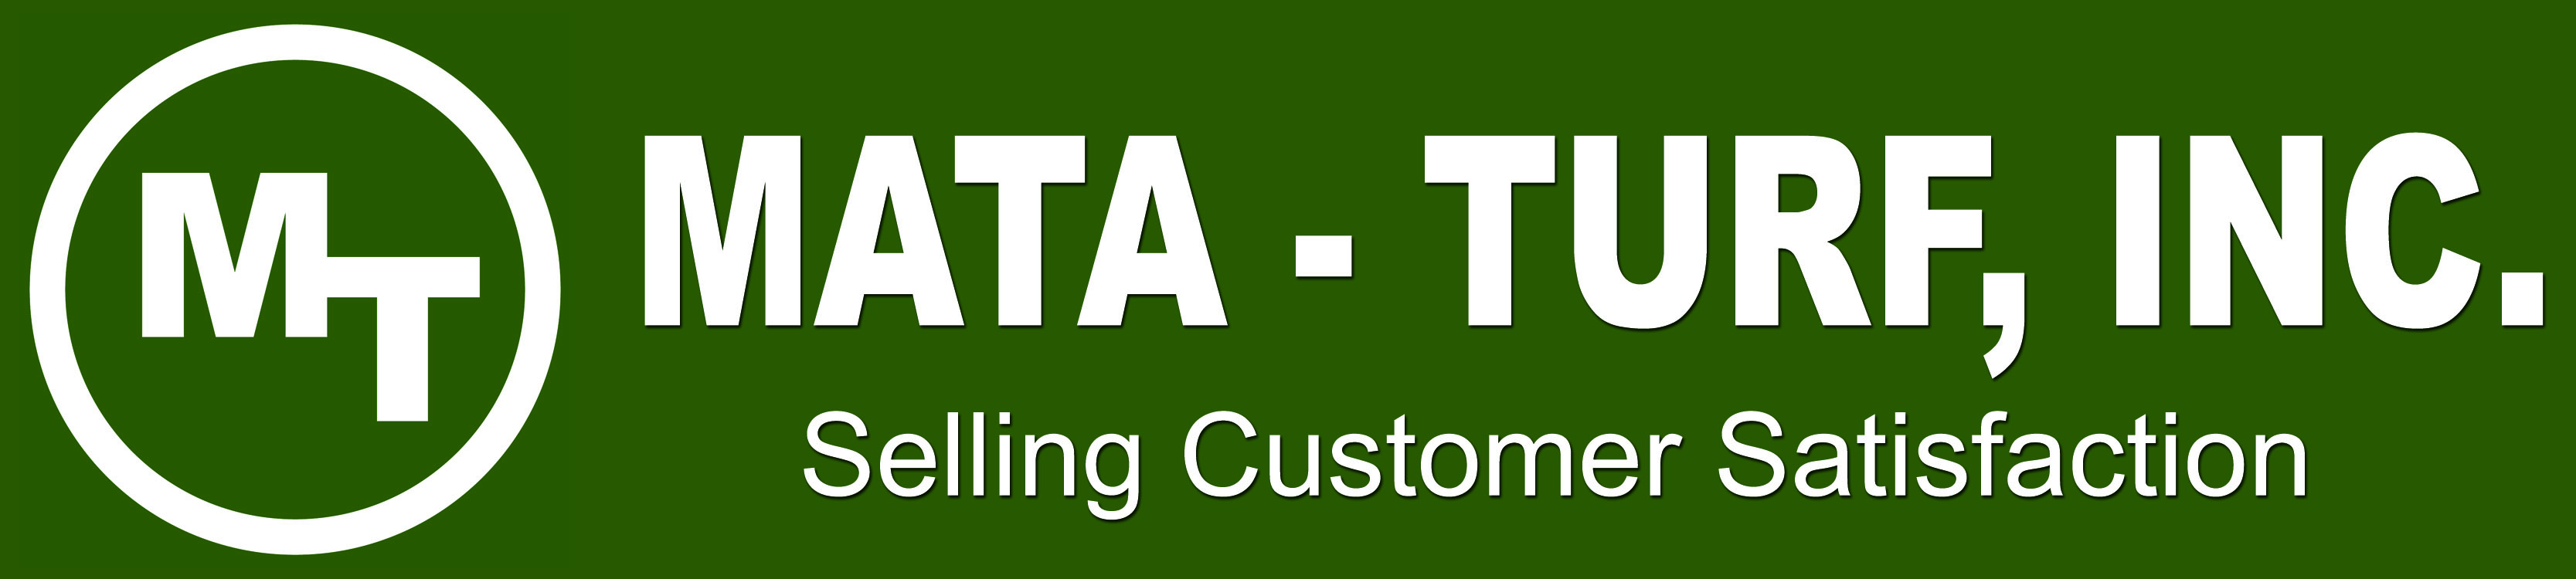 Mata Turf, Inc